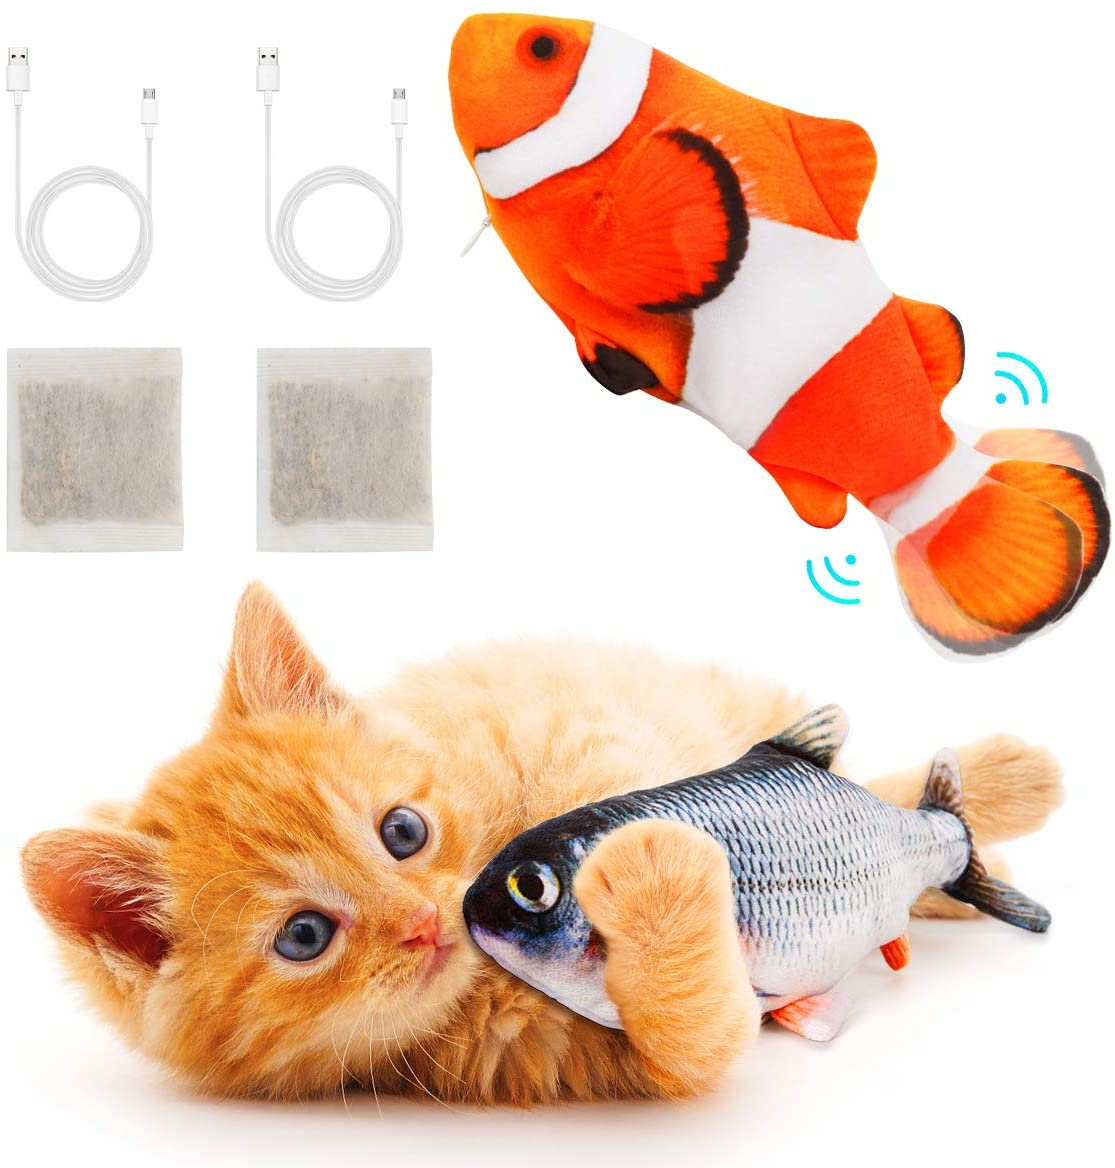 Interactive Cat Toys Floppy Moving Fish with Catnip Realistic Plush Electric Wagging Toy for Indoor Kitty Pet Grabbing, Biting, Chewing and Kicking 2 Pack (Clownfish + Carp)